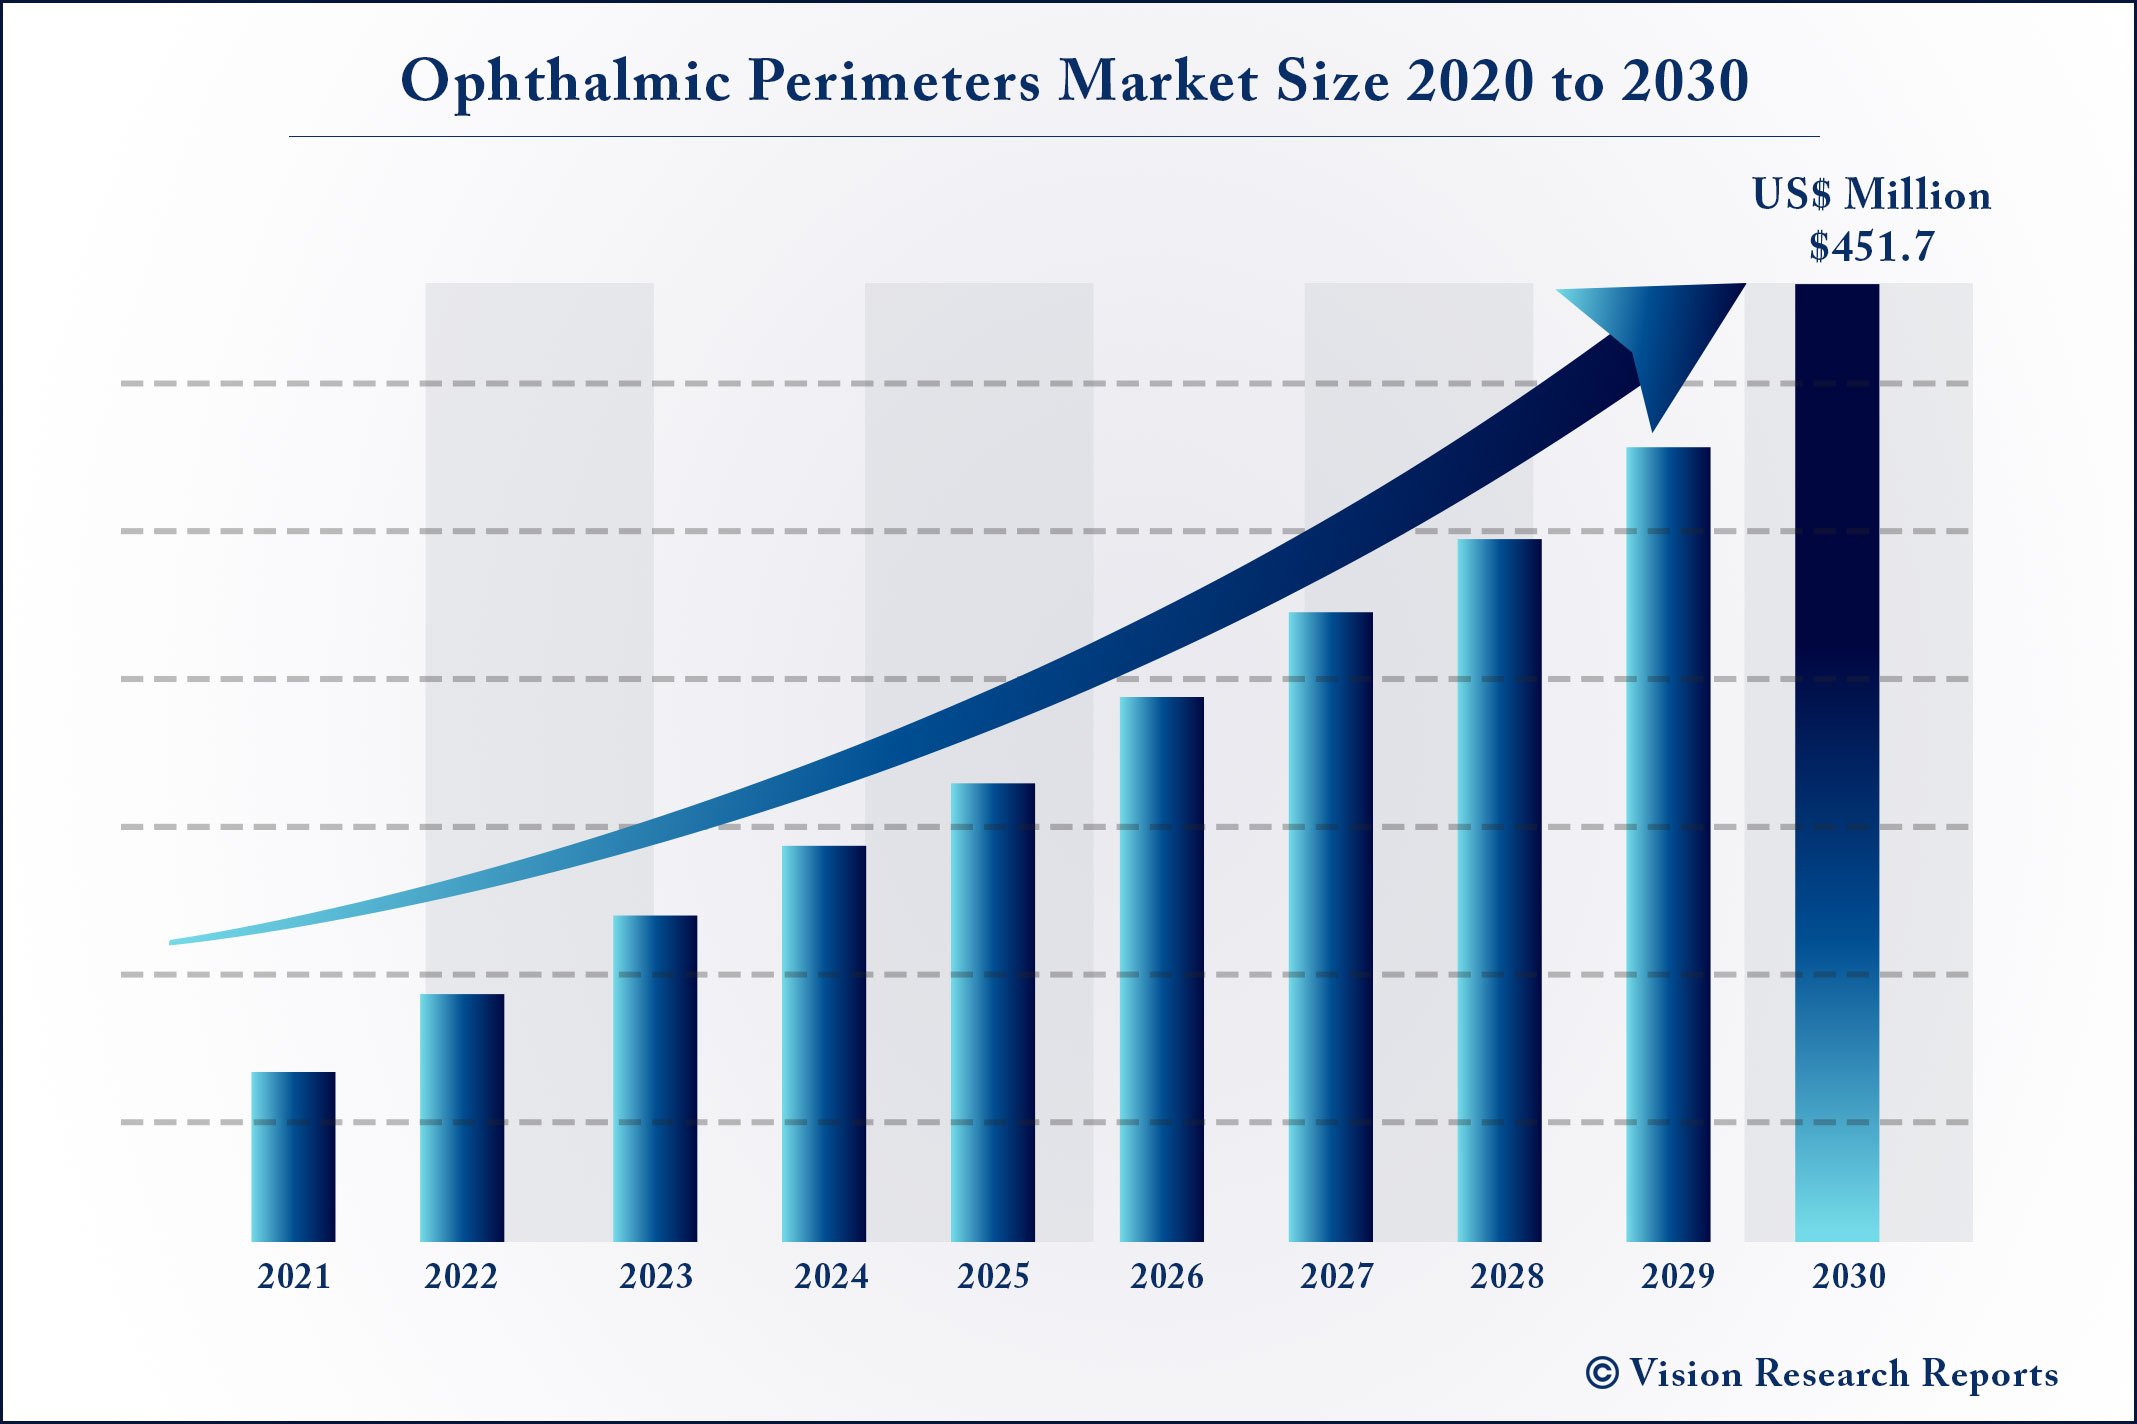 Ophthalmic Perimeters Market Size 2020 to 2030